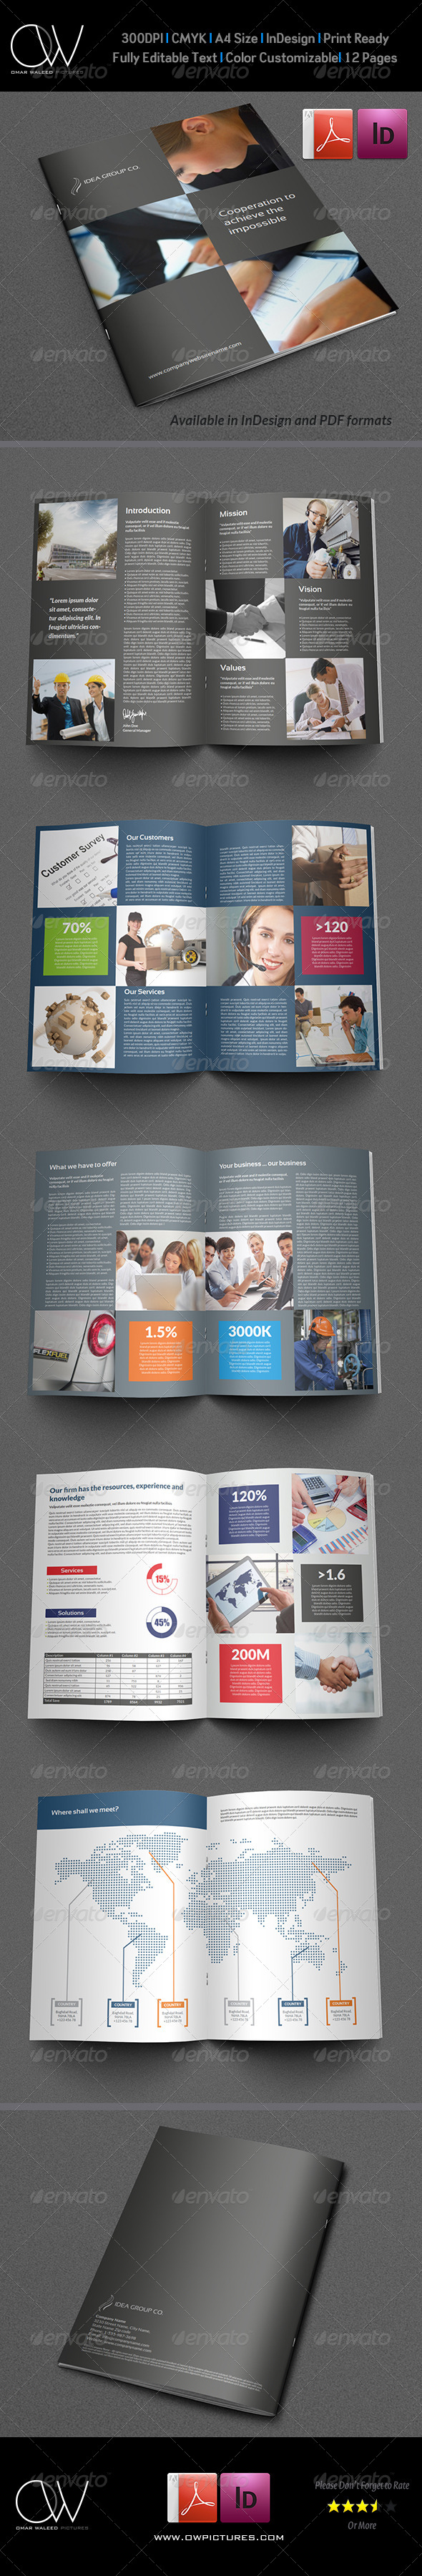 Corporate Brochure Template Vol.17 - 12 Pages - Corporate Brochures